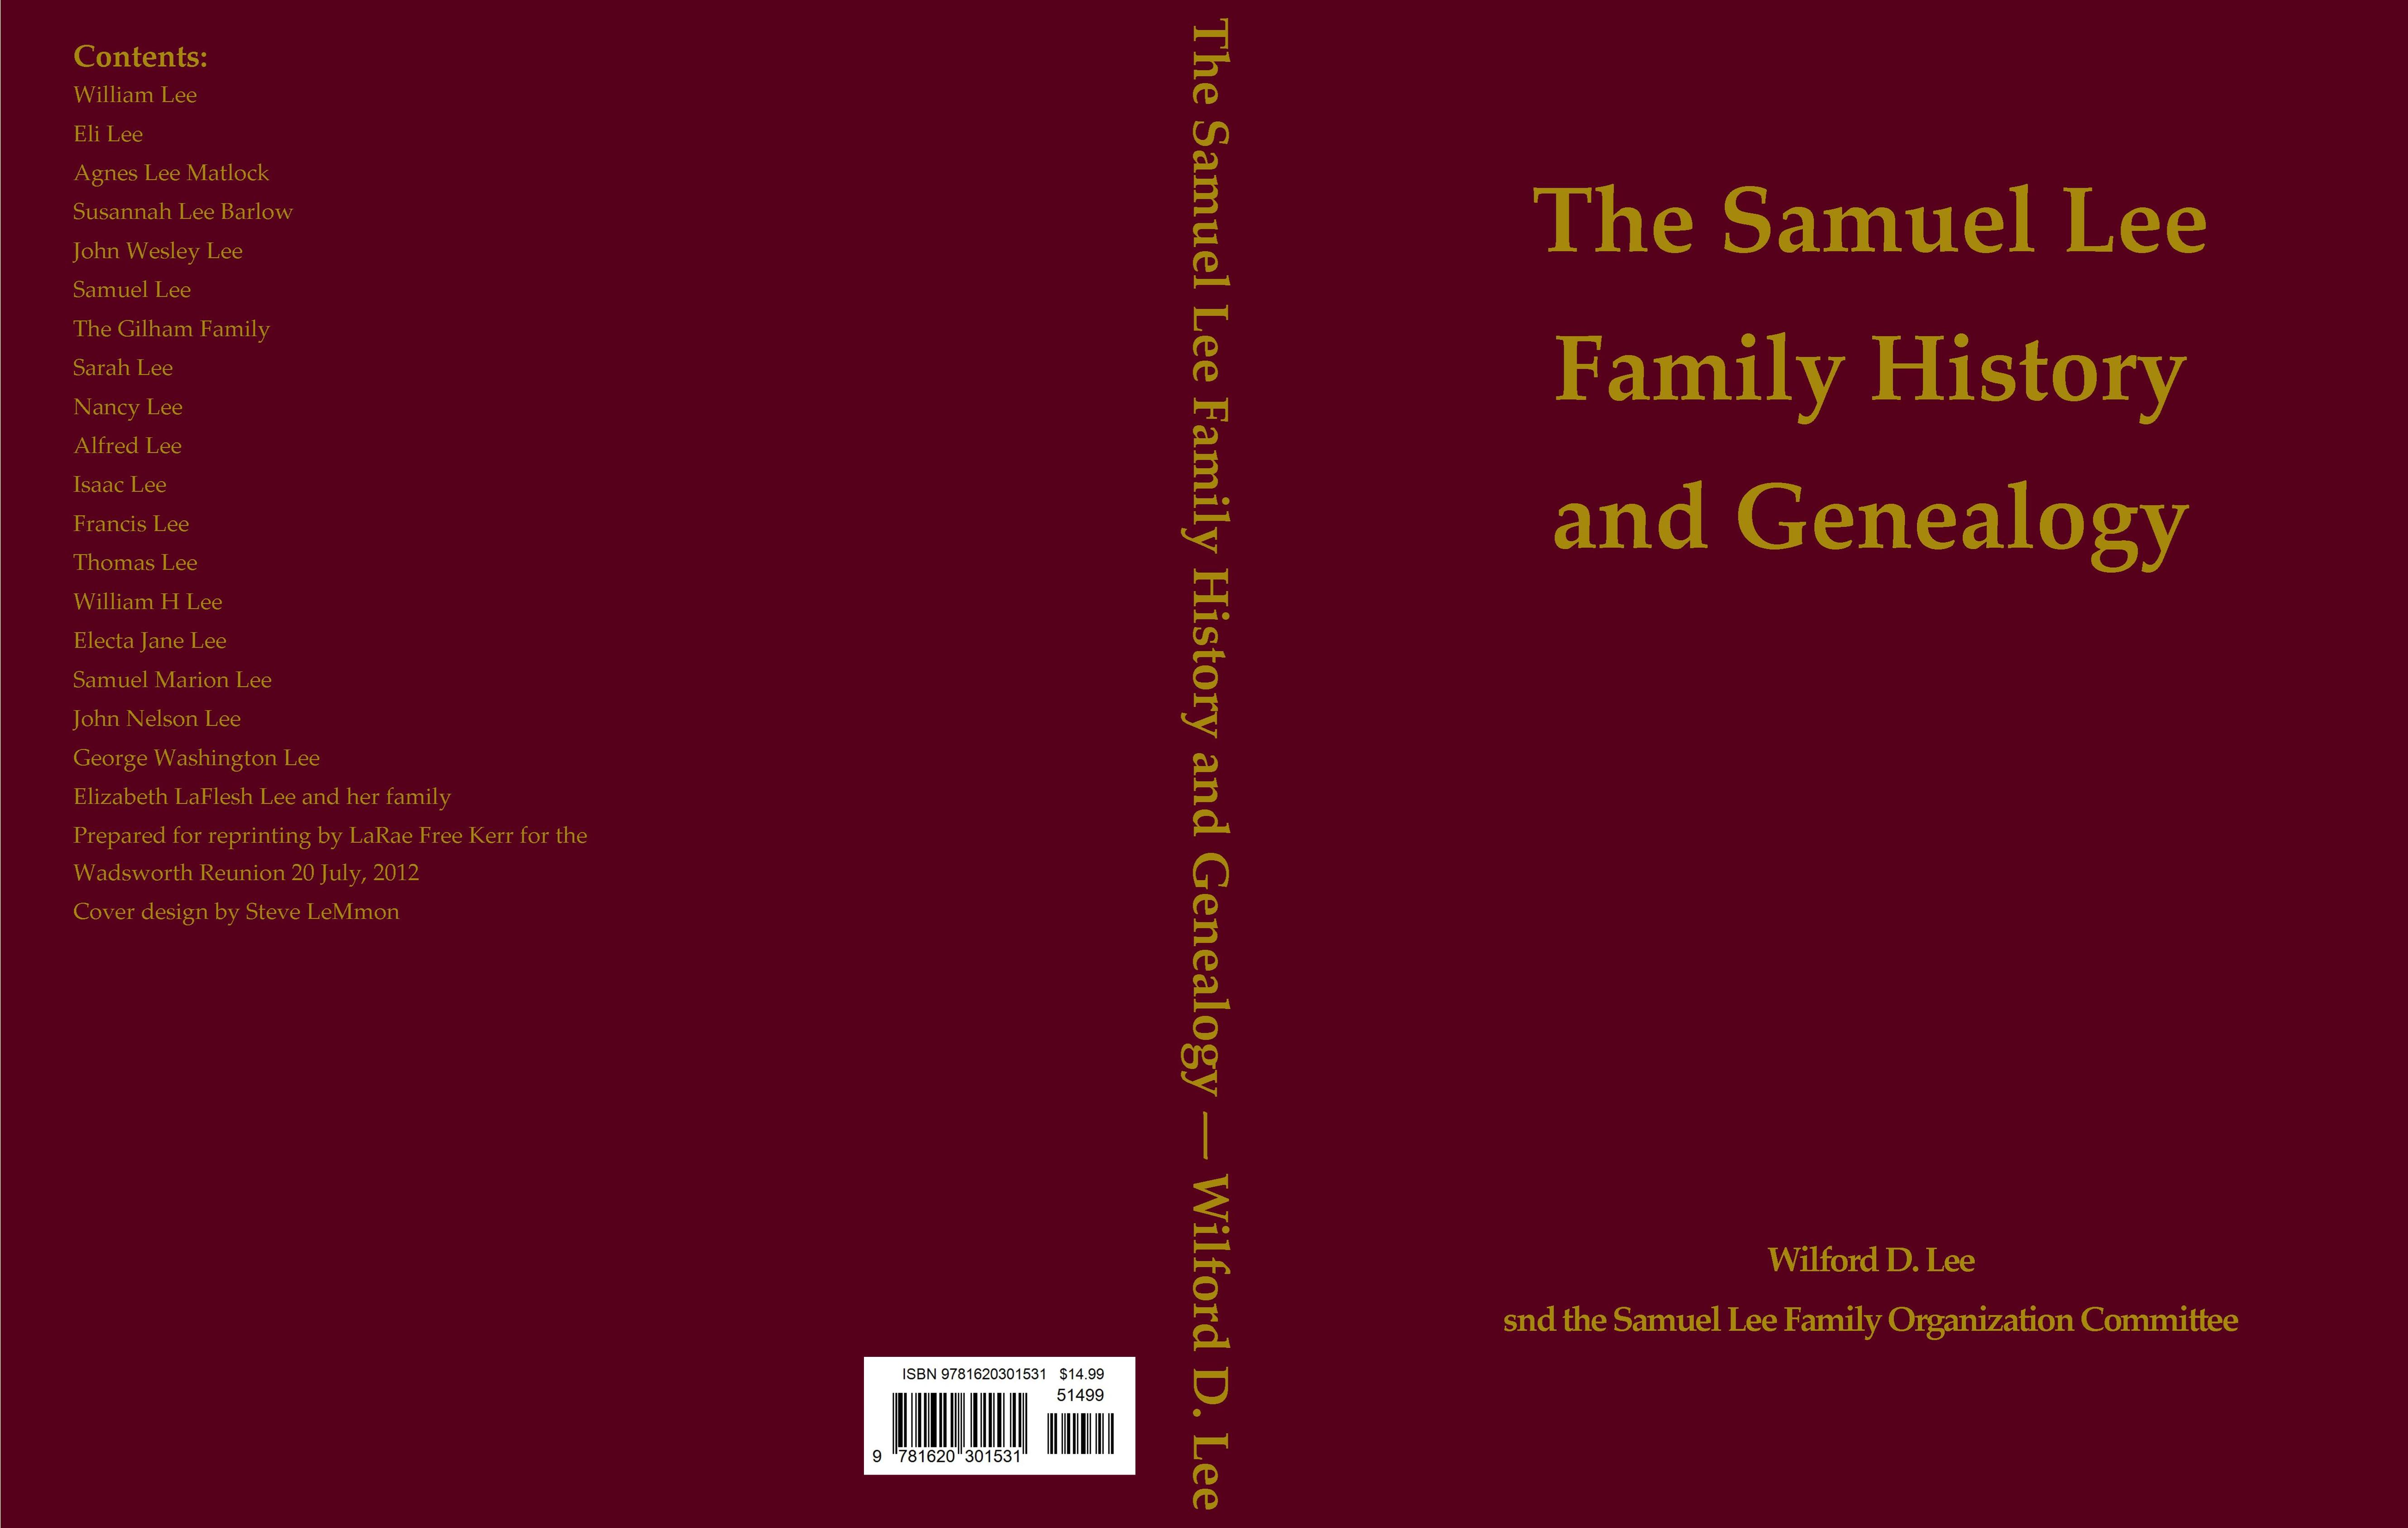 History Book Cover Ideas ~ The samuel lee family history and genealogy by larae kerr